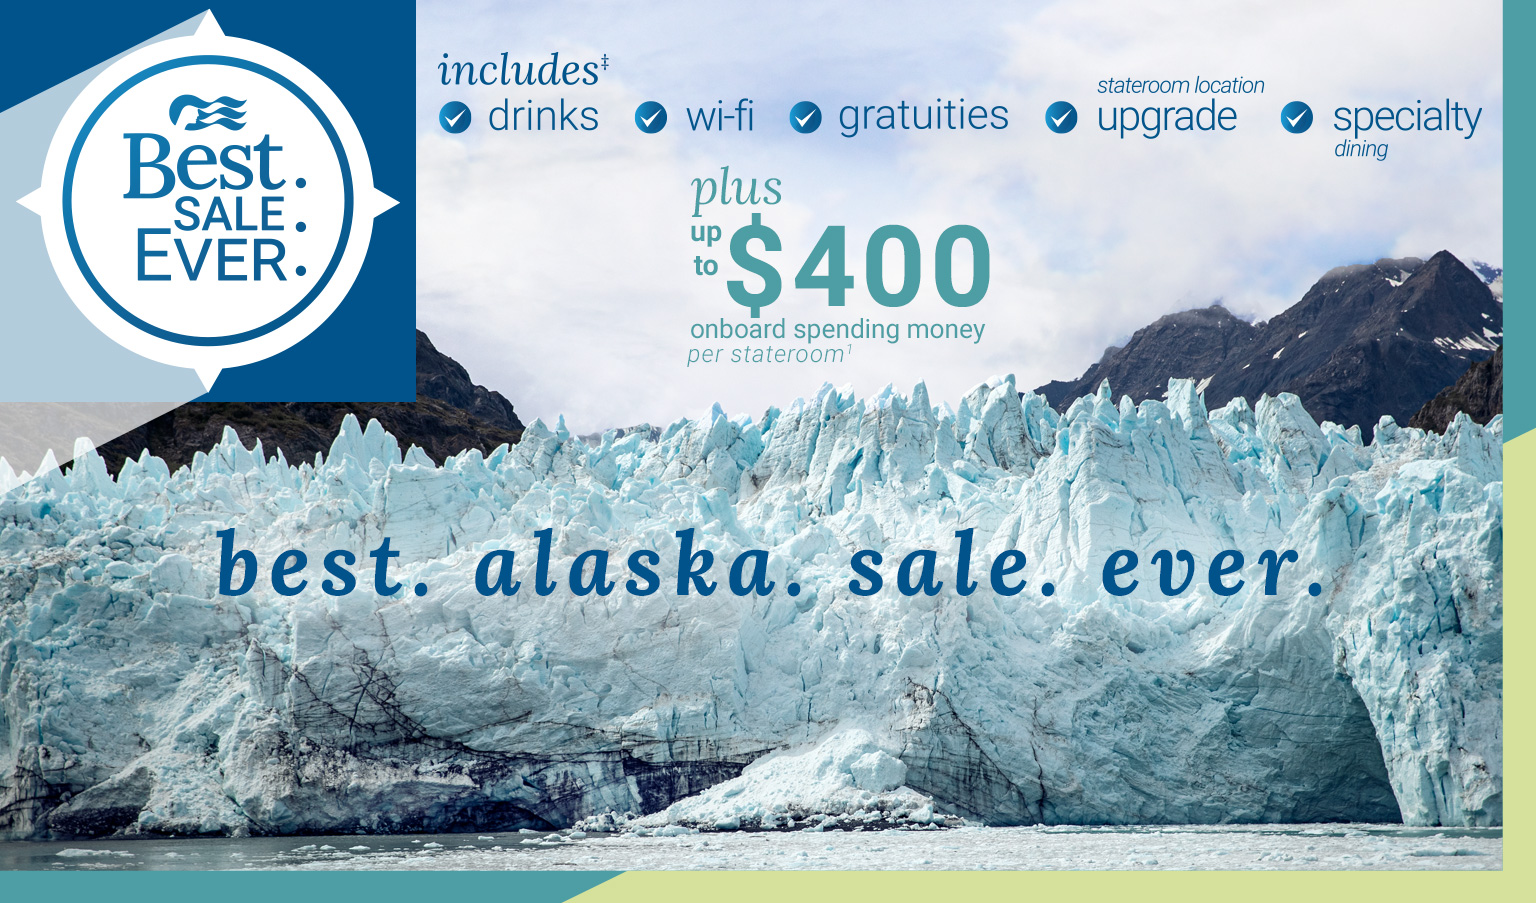 Alaska is even better with the Princess' Best. Sale. Ever